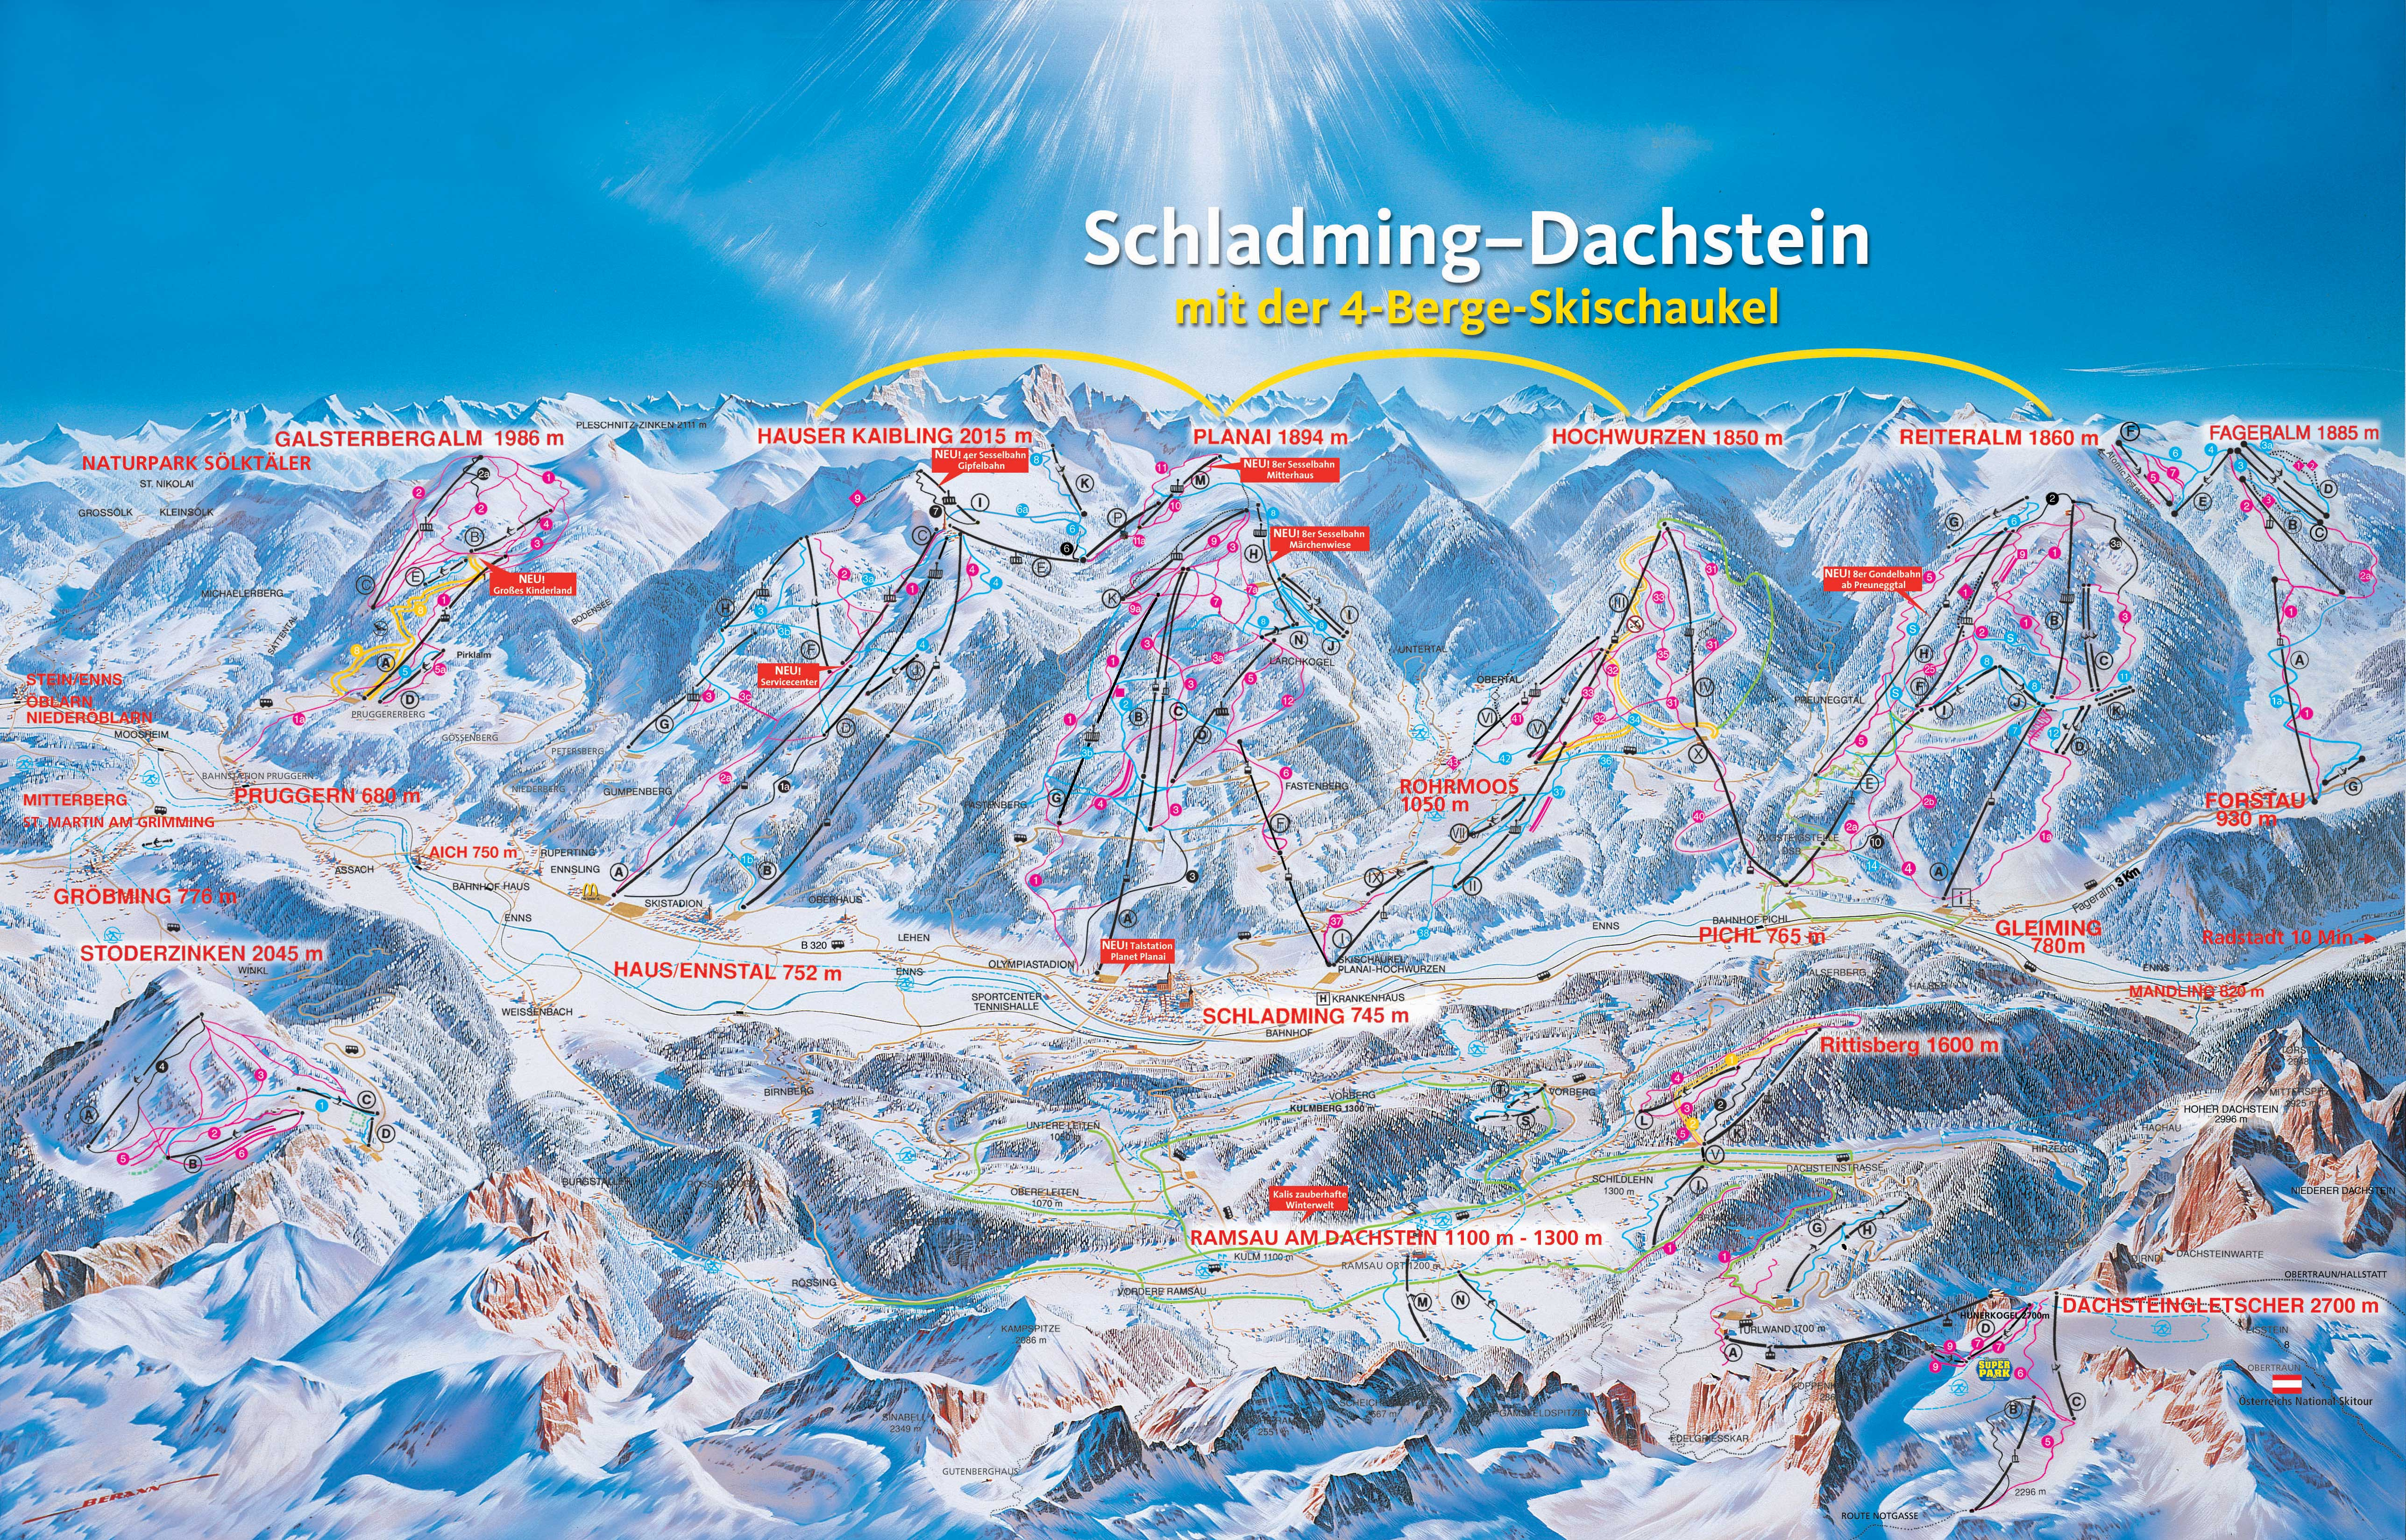 ski resorts in oregon map with Schladming on Trail Map further Luxury How Many Ski Resorts In Washington State besides New H shire 4000 Footers Poster Map moreover Lake Tahoe Ski Resorts Map Poster together with Adirondack High Peaks Map 18x24 Poster.